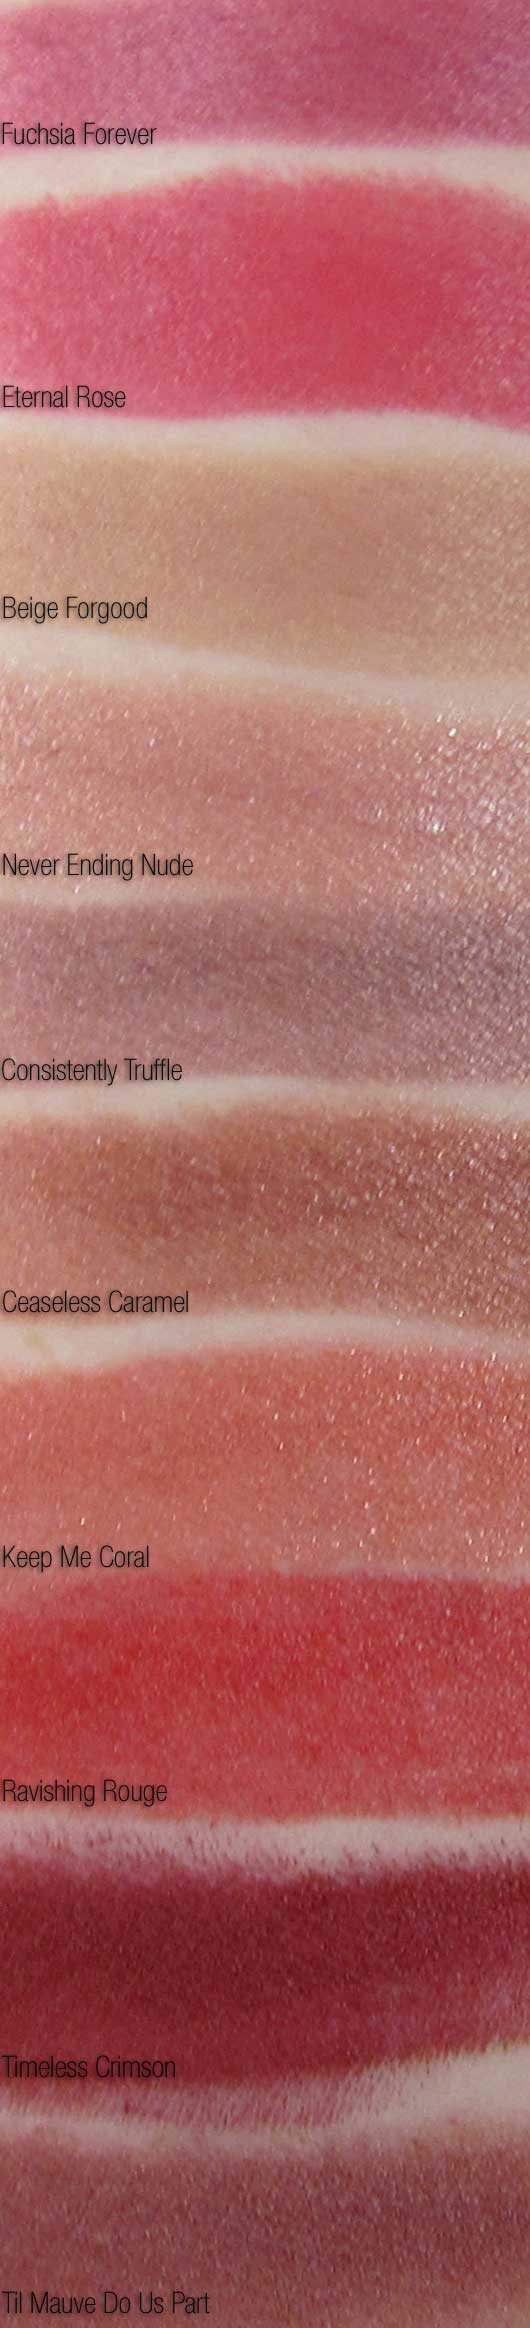 Review: Maybelline Super Stay 24hr Lip Gloss | Maybelline, Lips ...